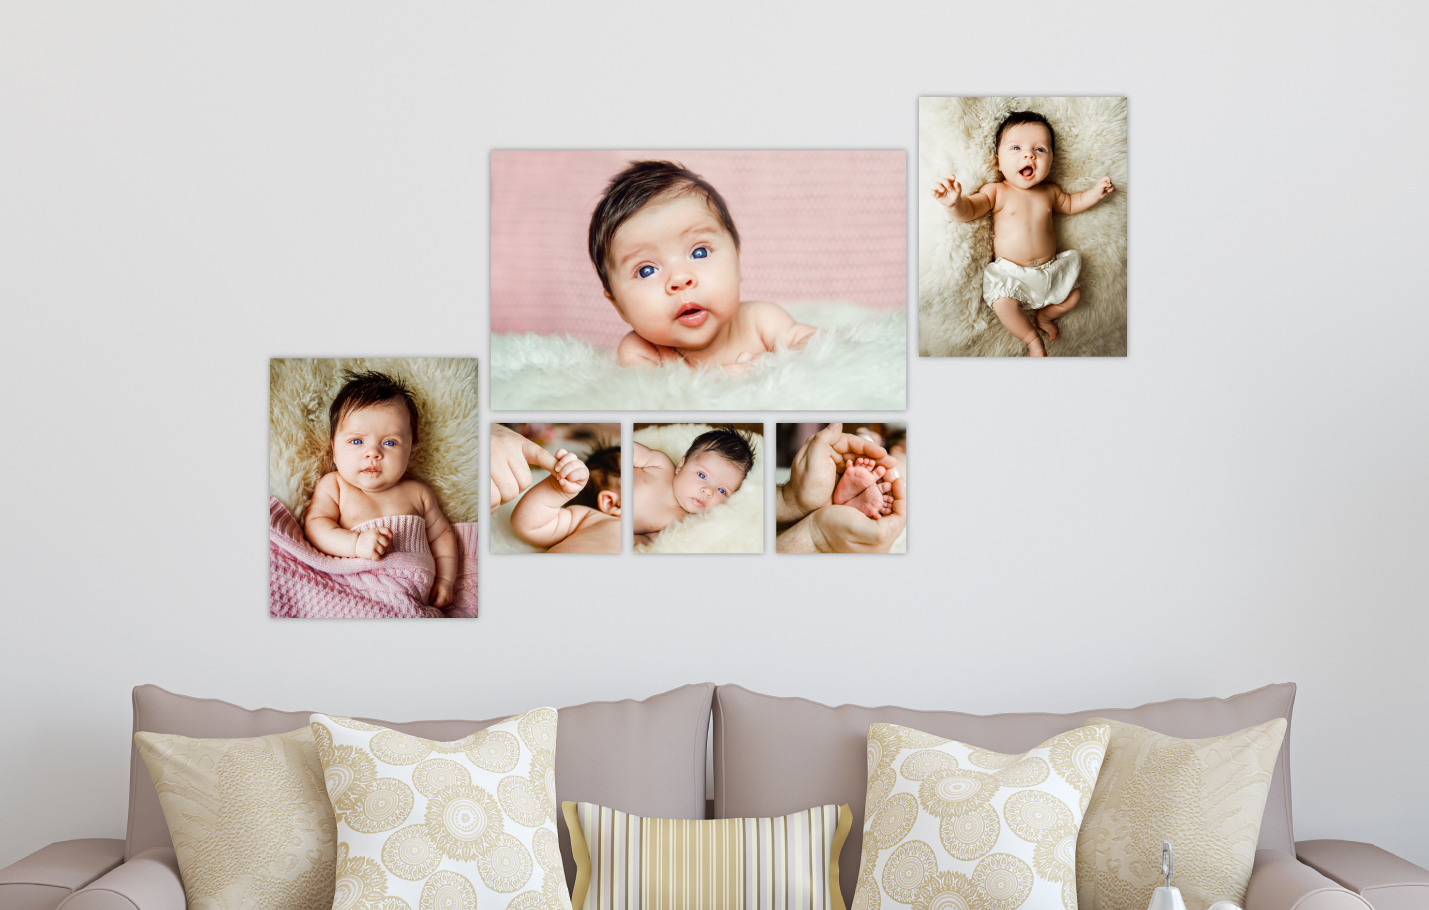 Newborn Baby Session Printed on Split Image & Cluster Canvas Wrap Stairclimber Design